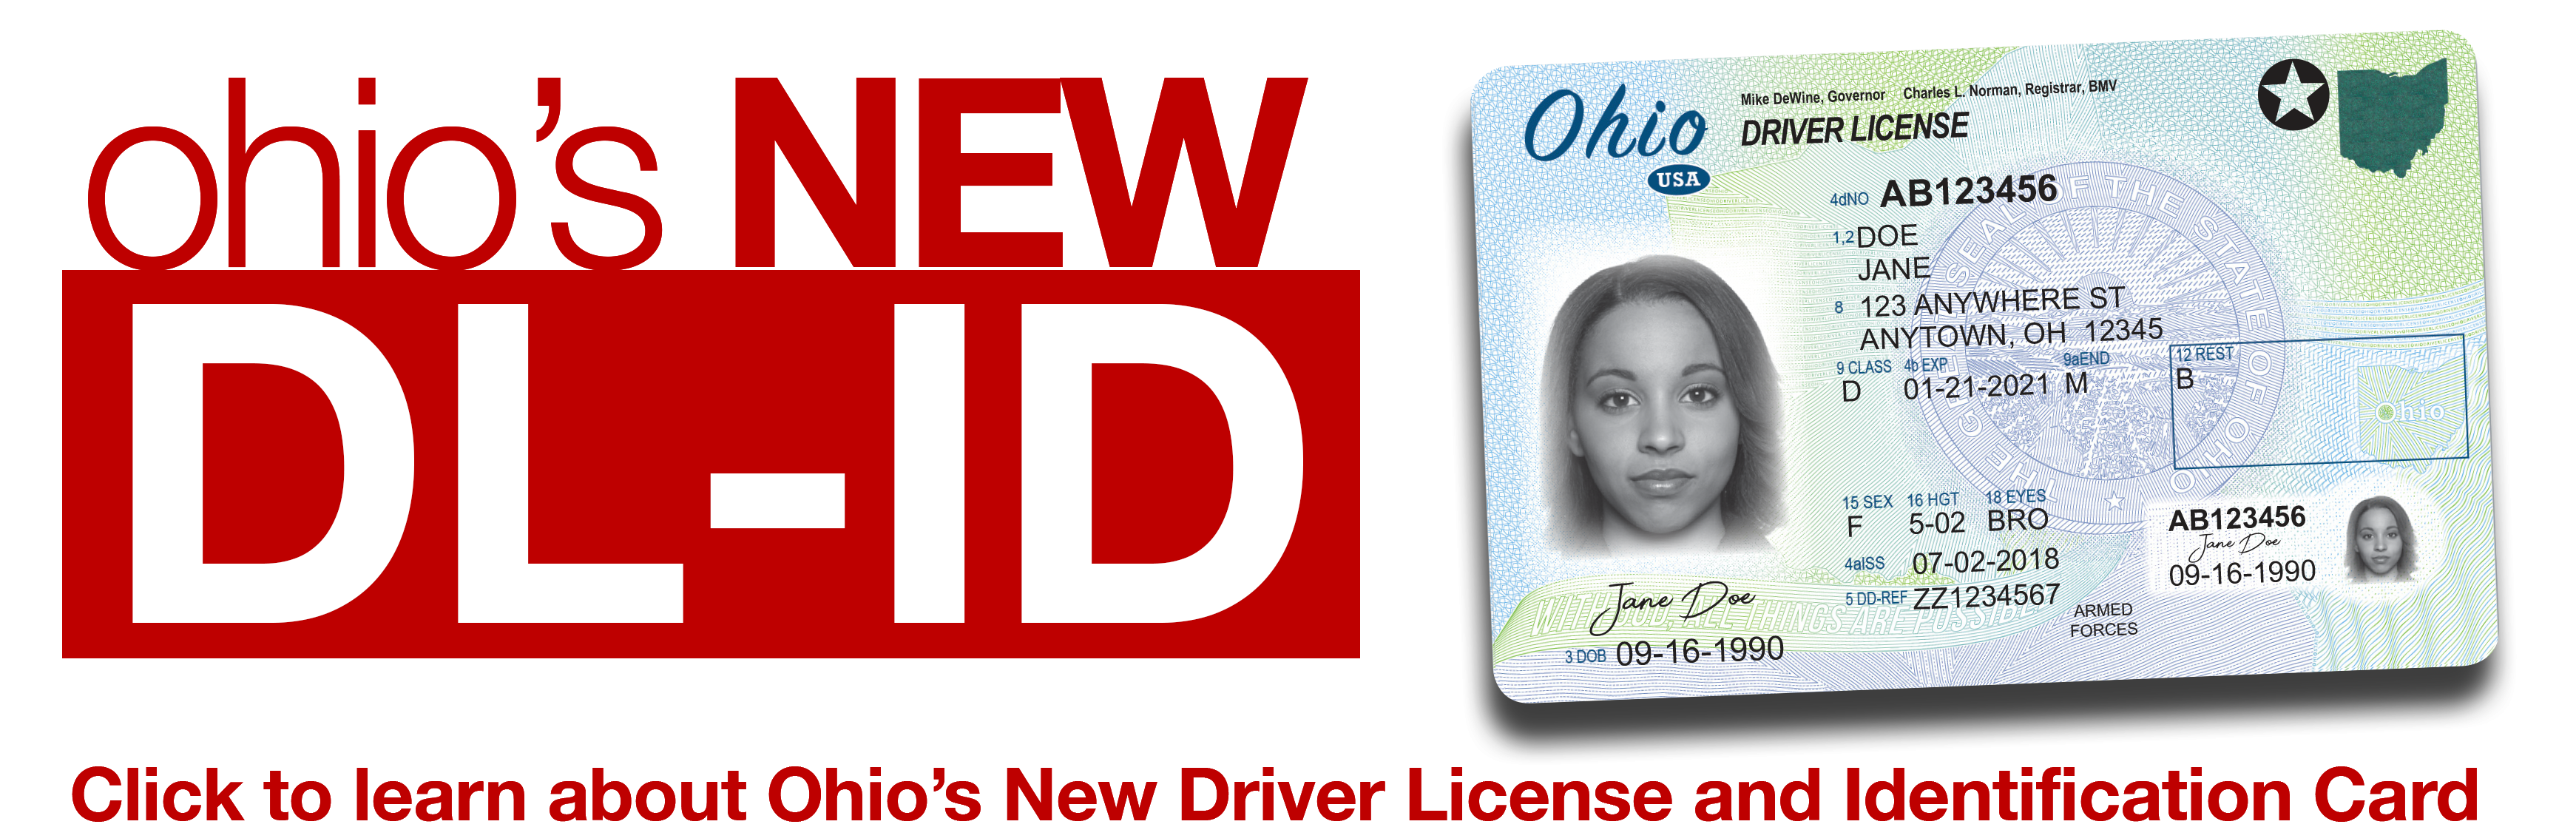 Ohio's New Driver License and Identification Card